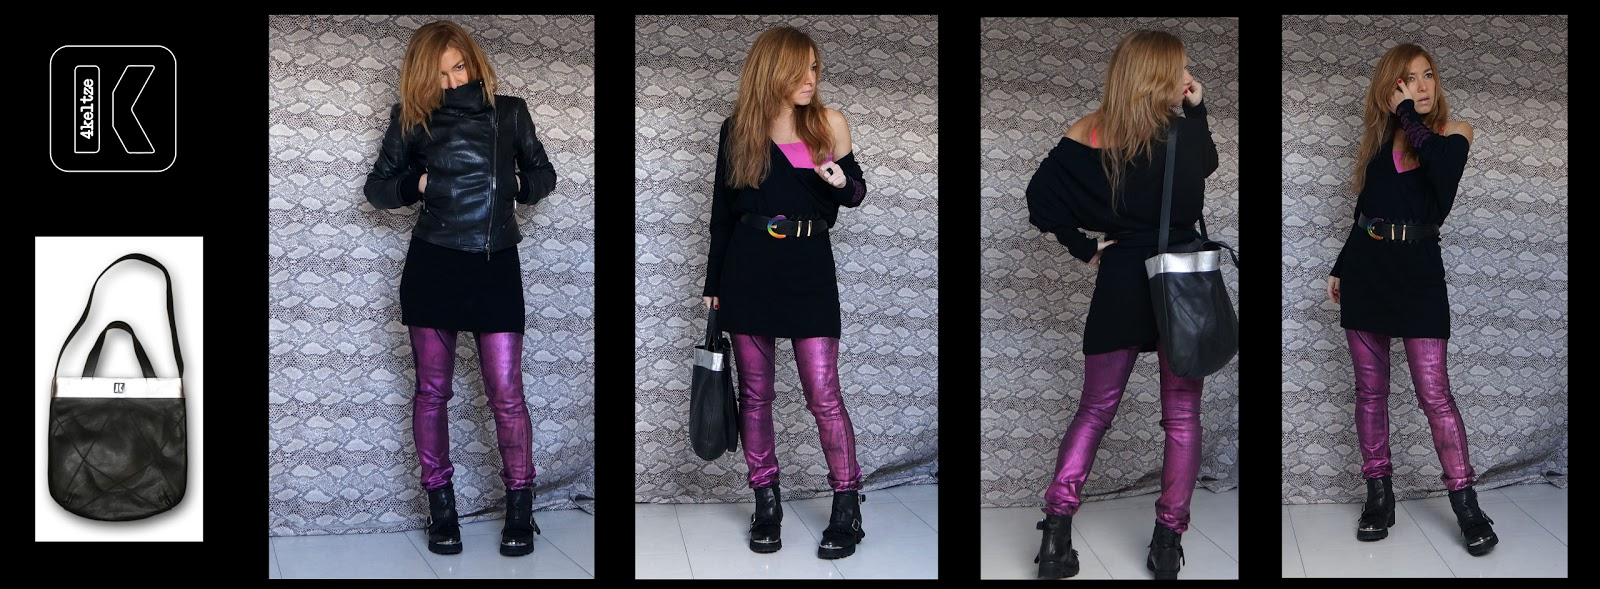 bolso k-tastic y look rock chic